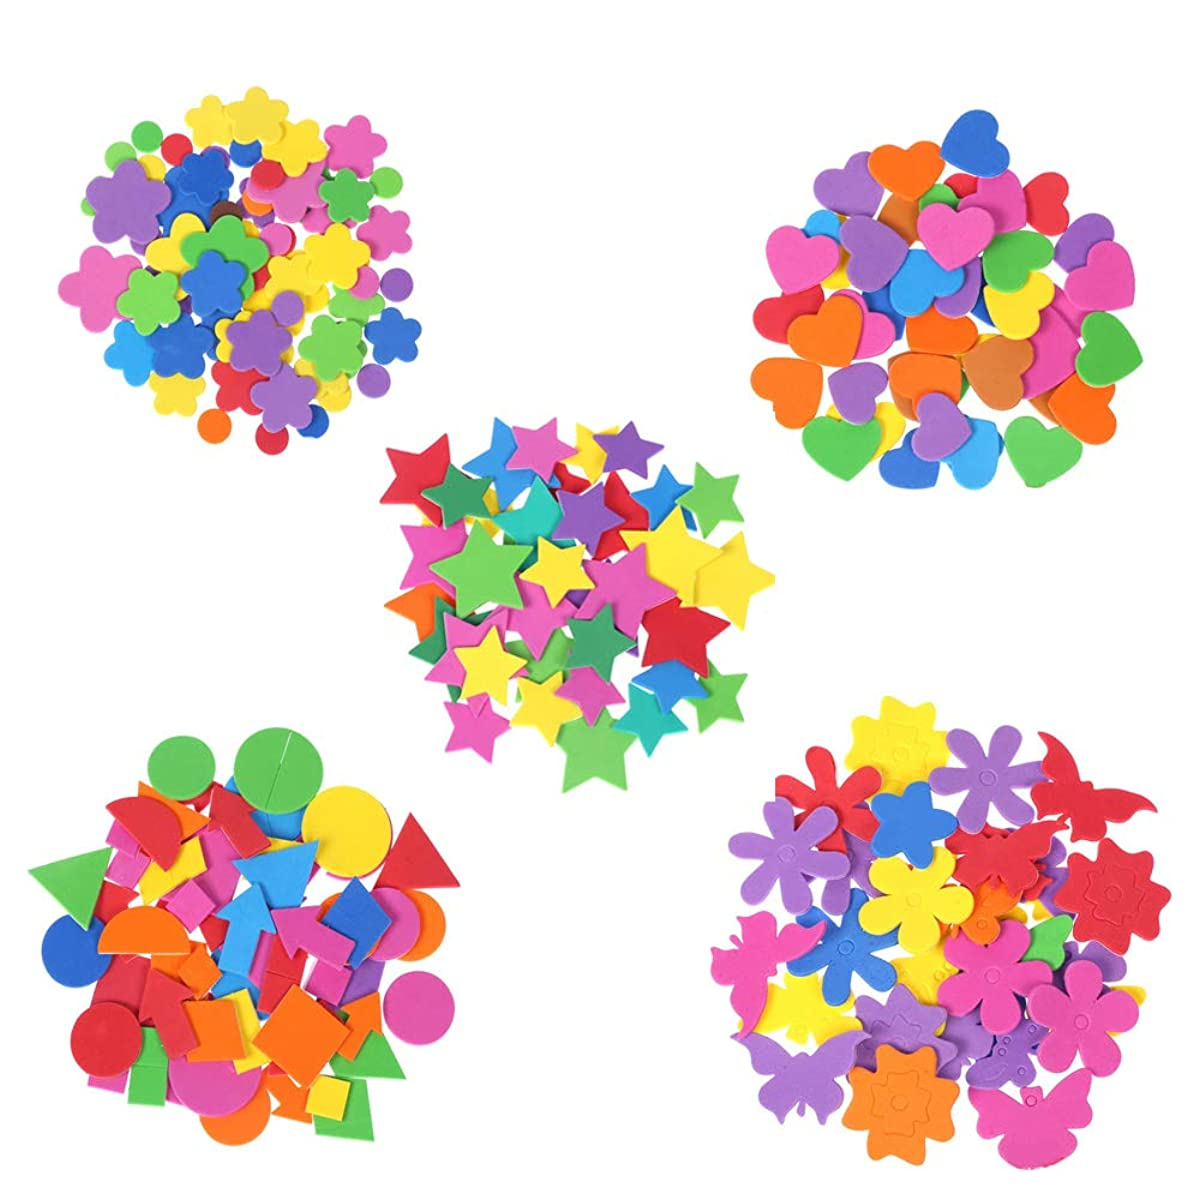 240 Pcs Mini Foam Stickers,Colorful Self Adhesive Geometry Foam Stickers,Stickers For Kids,Self Adhesive Diy Craft Sticker.suitable For Children's Crafts,Greeting Cards And Home Decoration. (5 Colors)